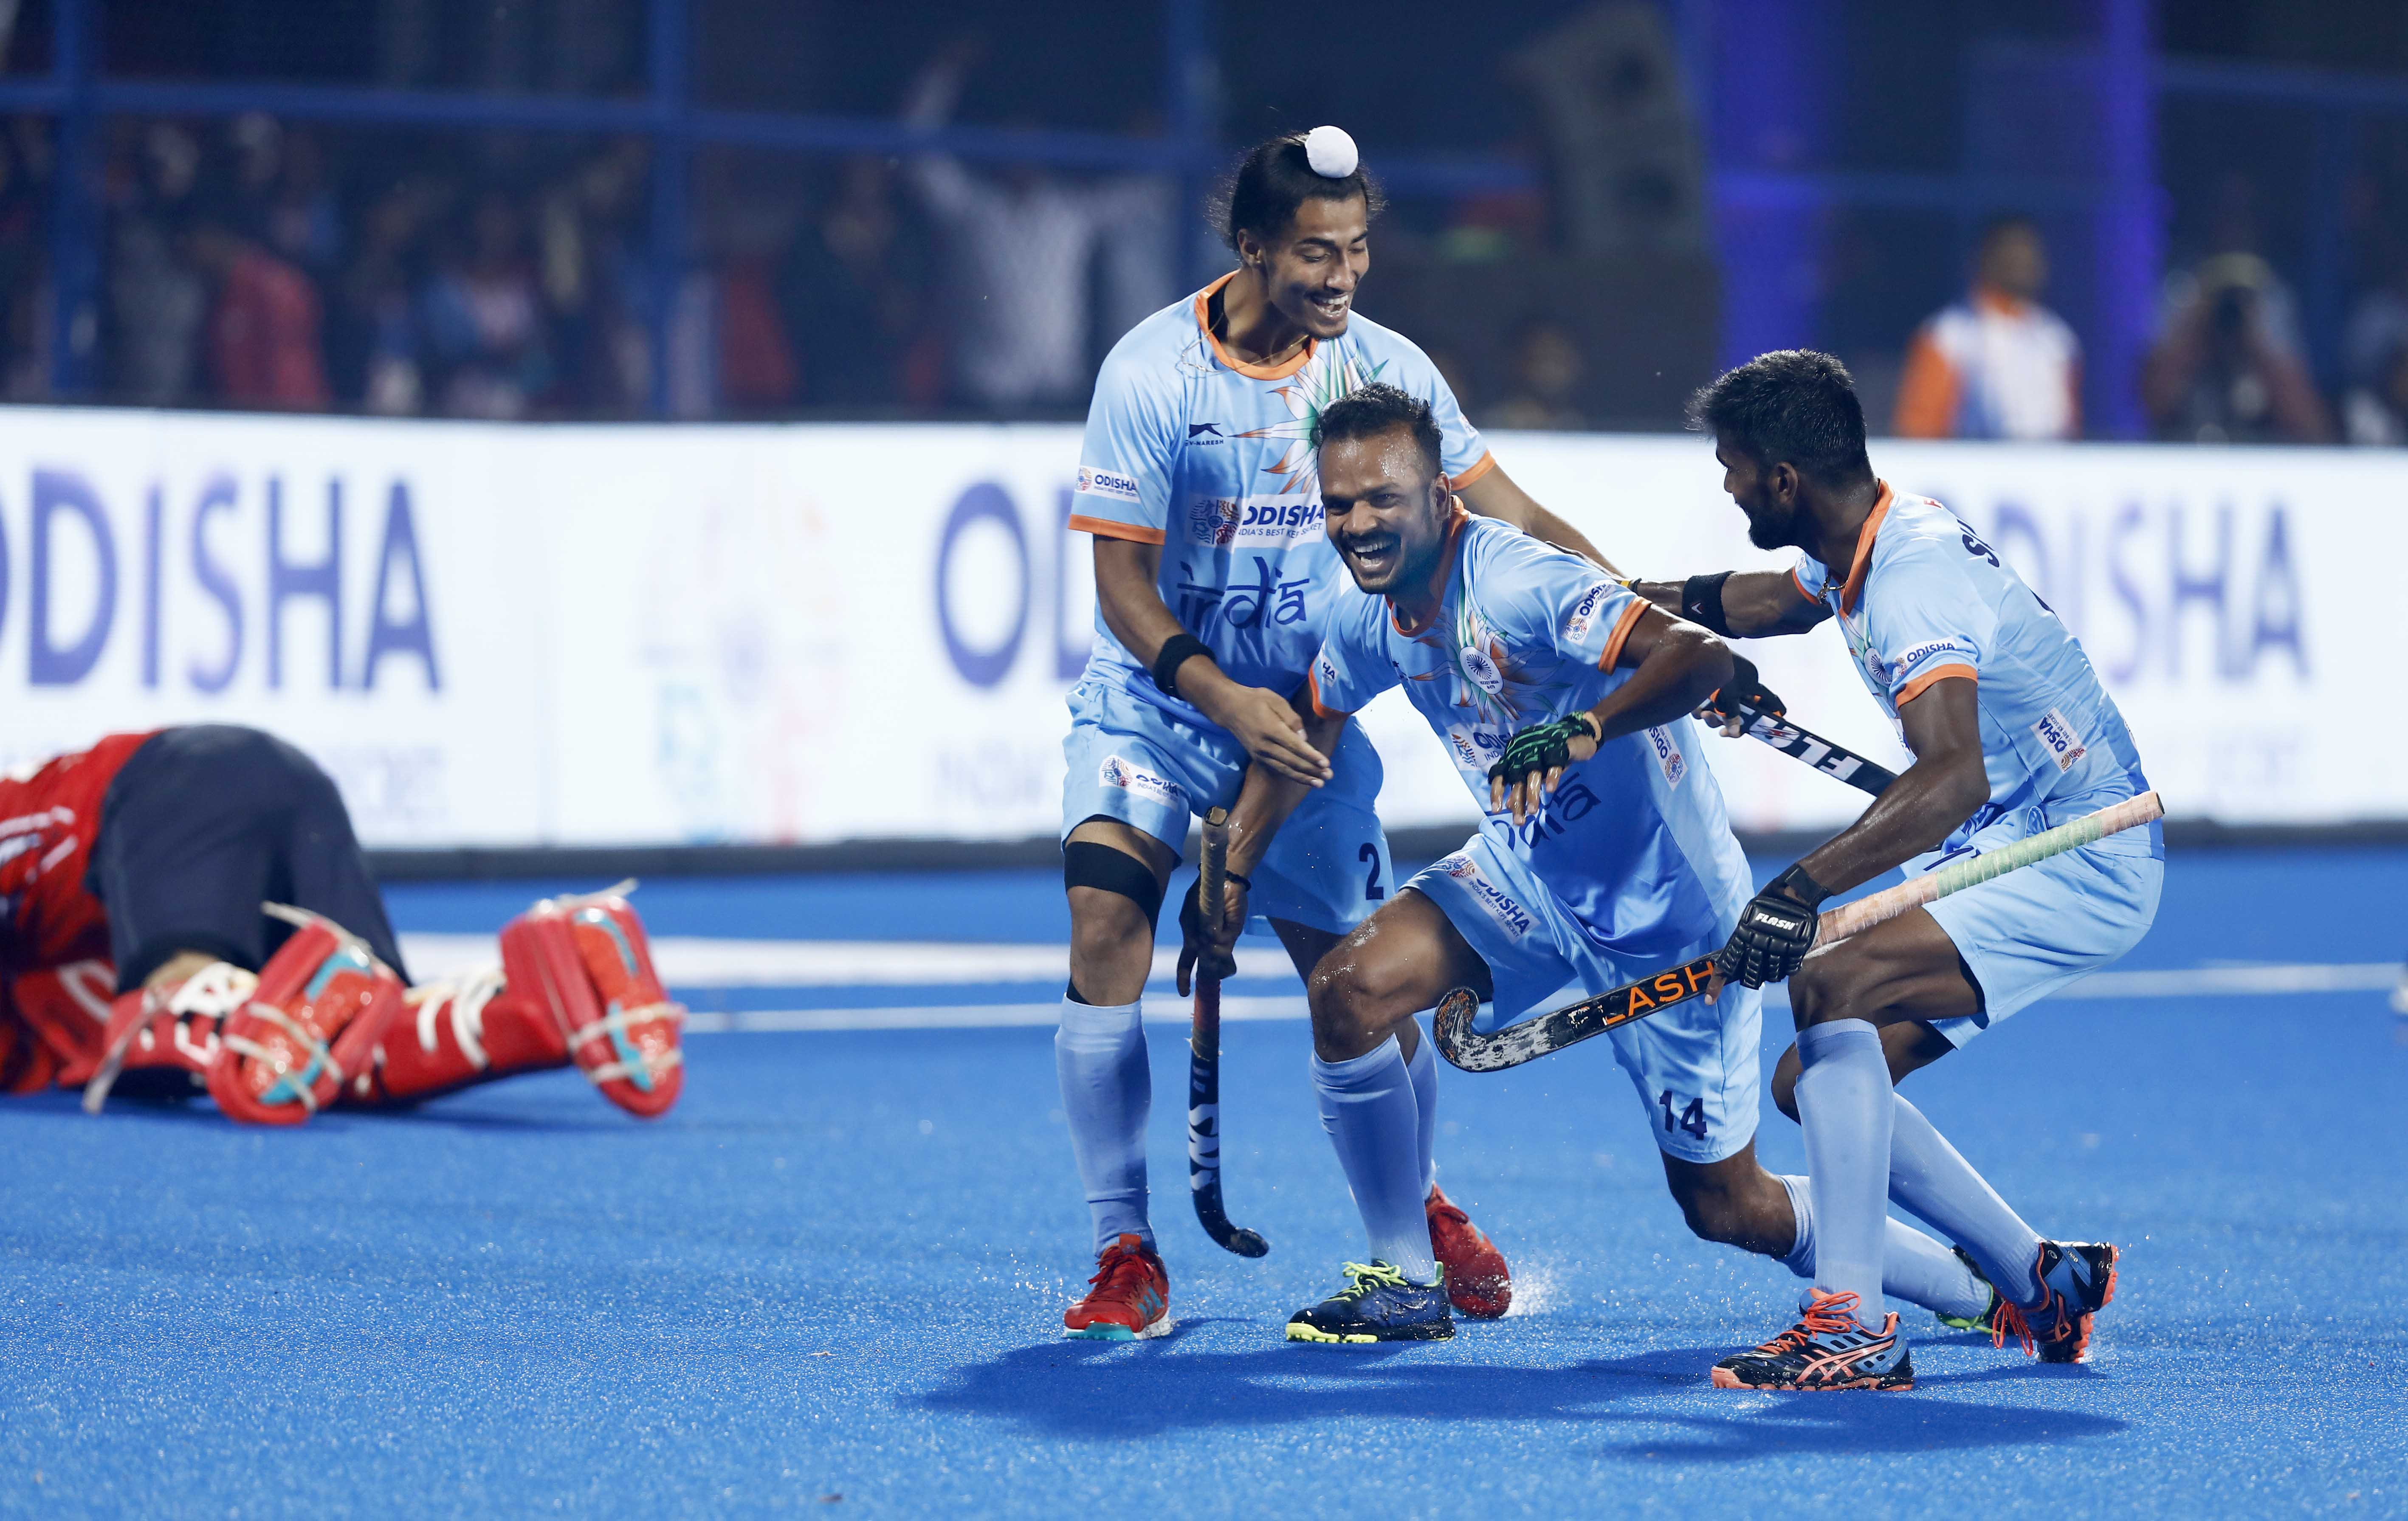 Indian hockey team players celebrate in the match against South Africa a the FIH Men's Hockey World Cup